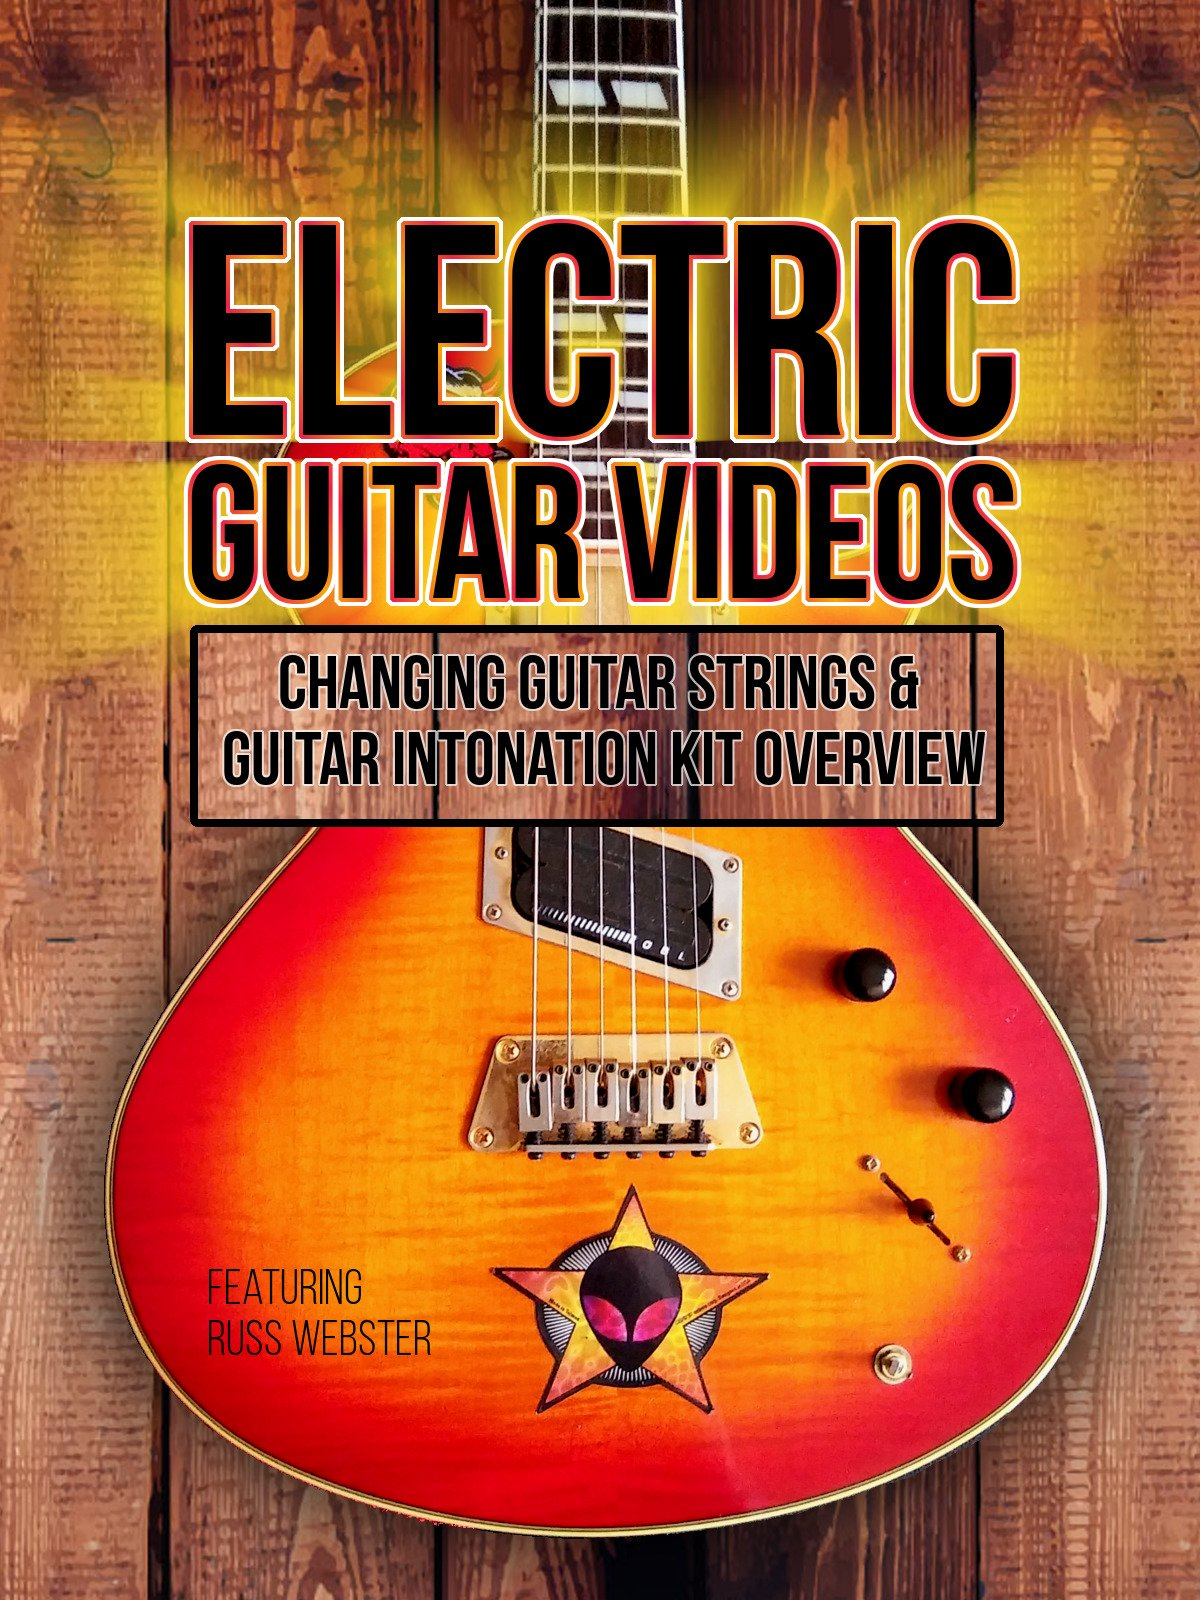 Electric Guitar Videos: Changing Guitar Strings & Guitar Intonation Kit Overview on Amazon Prime Video UK